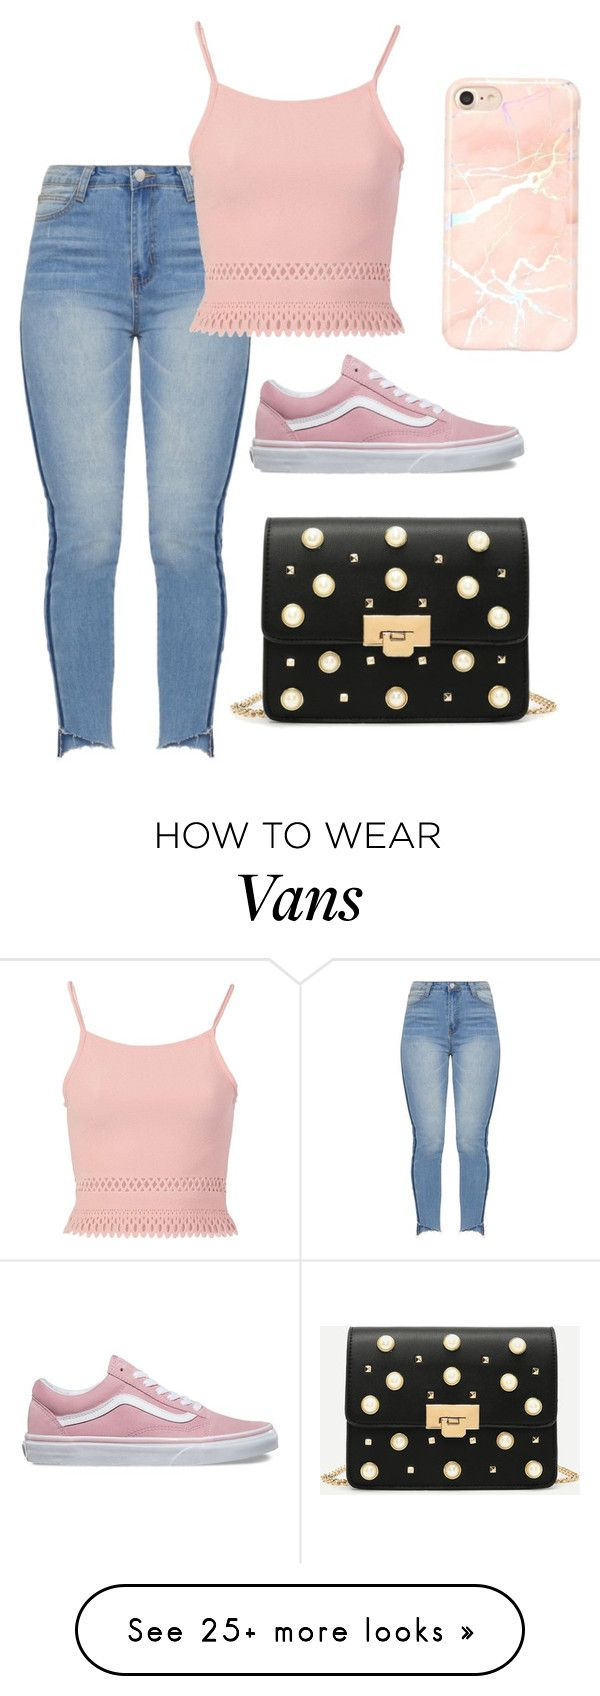 """Sem título #1760"" by natalierlu on Polyvore featuring Pilot and Vans"